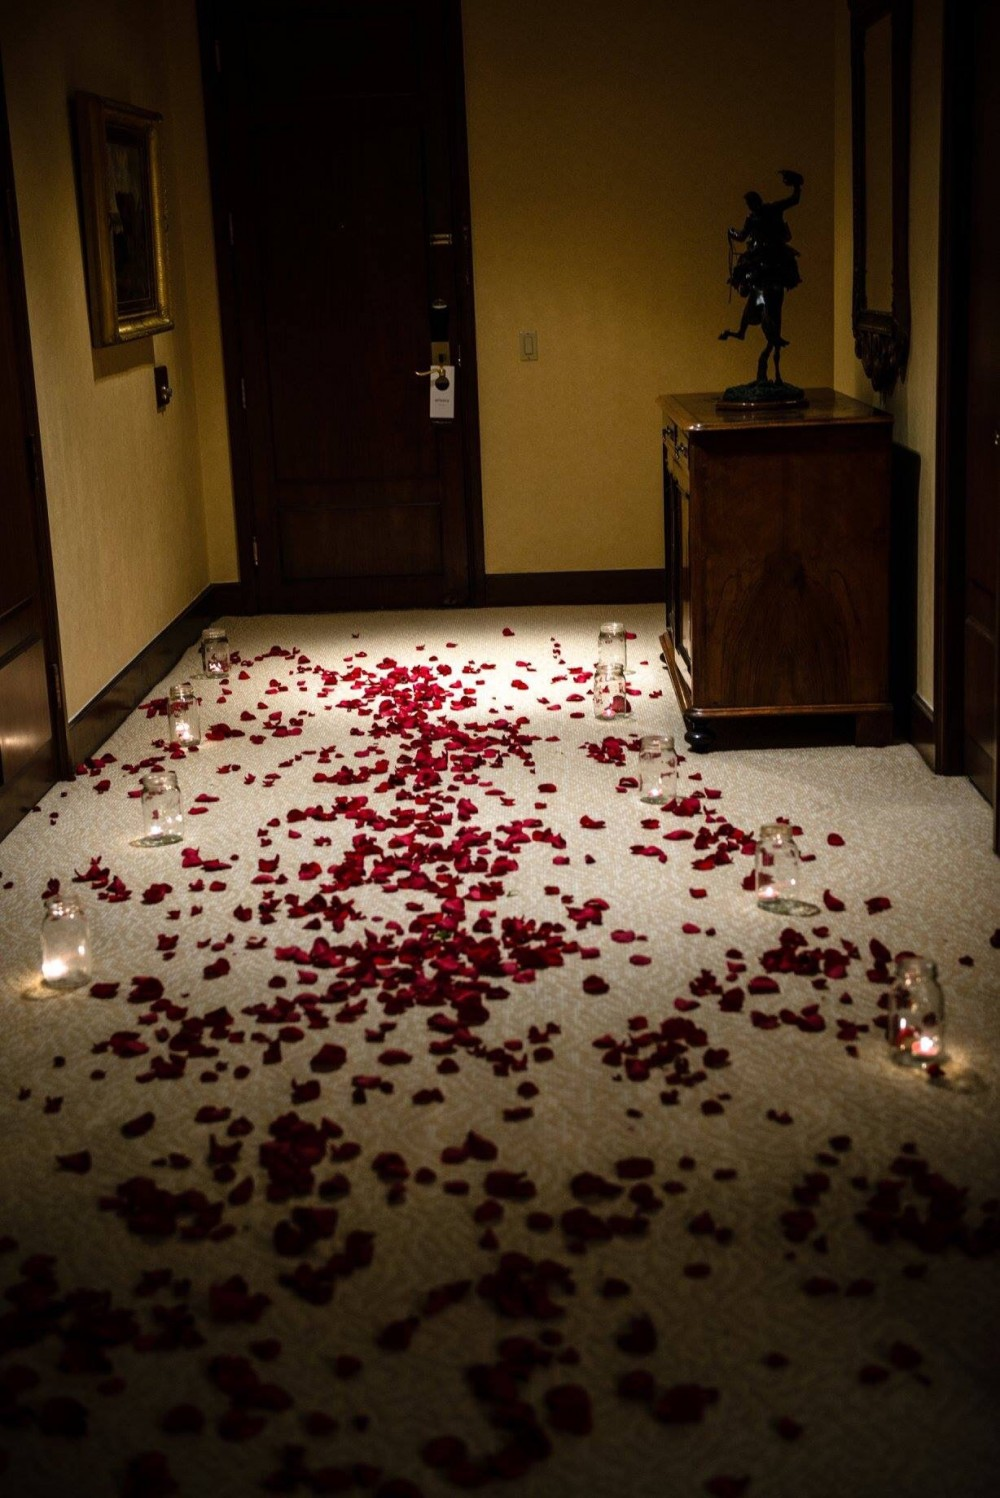 Image 5 of Haley and Colby's Hotel Suite Proposal